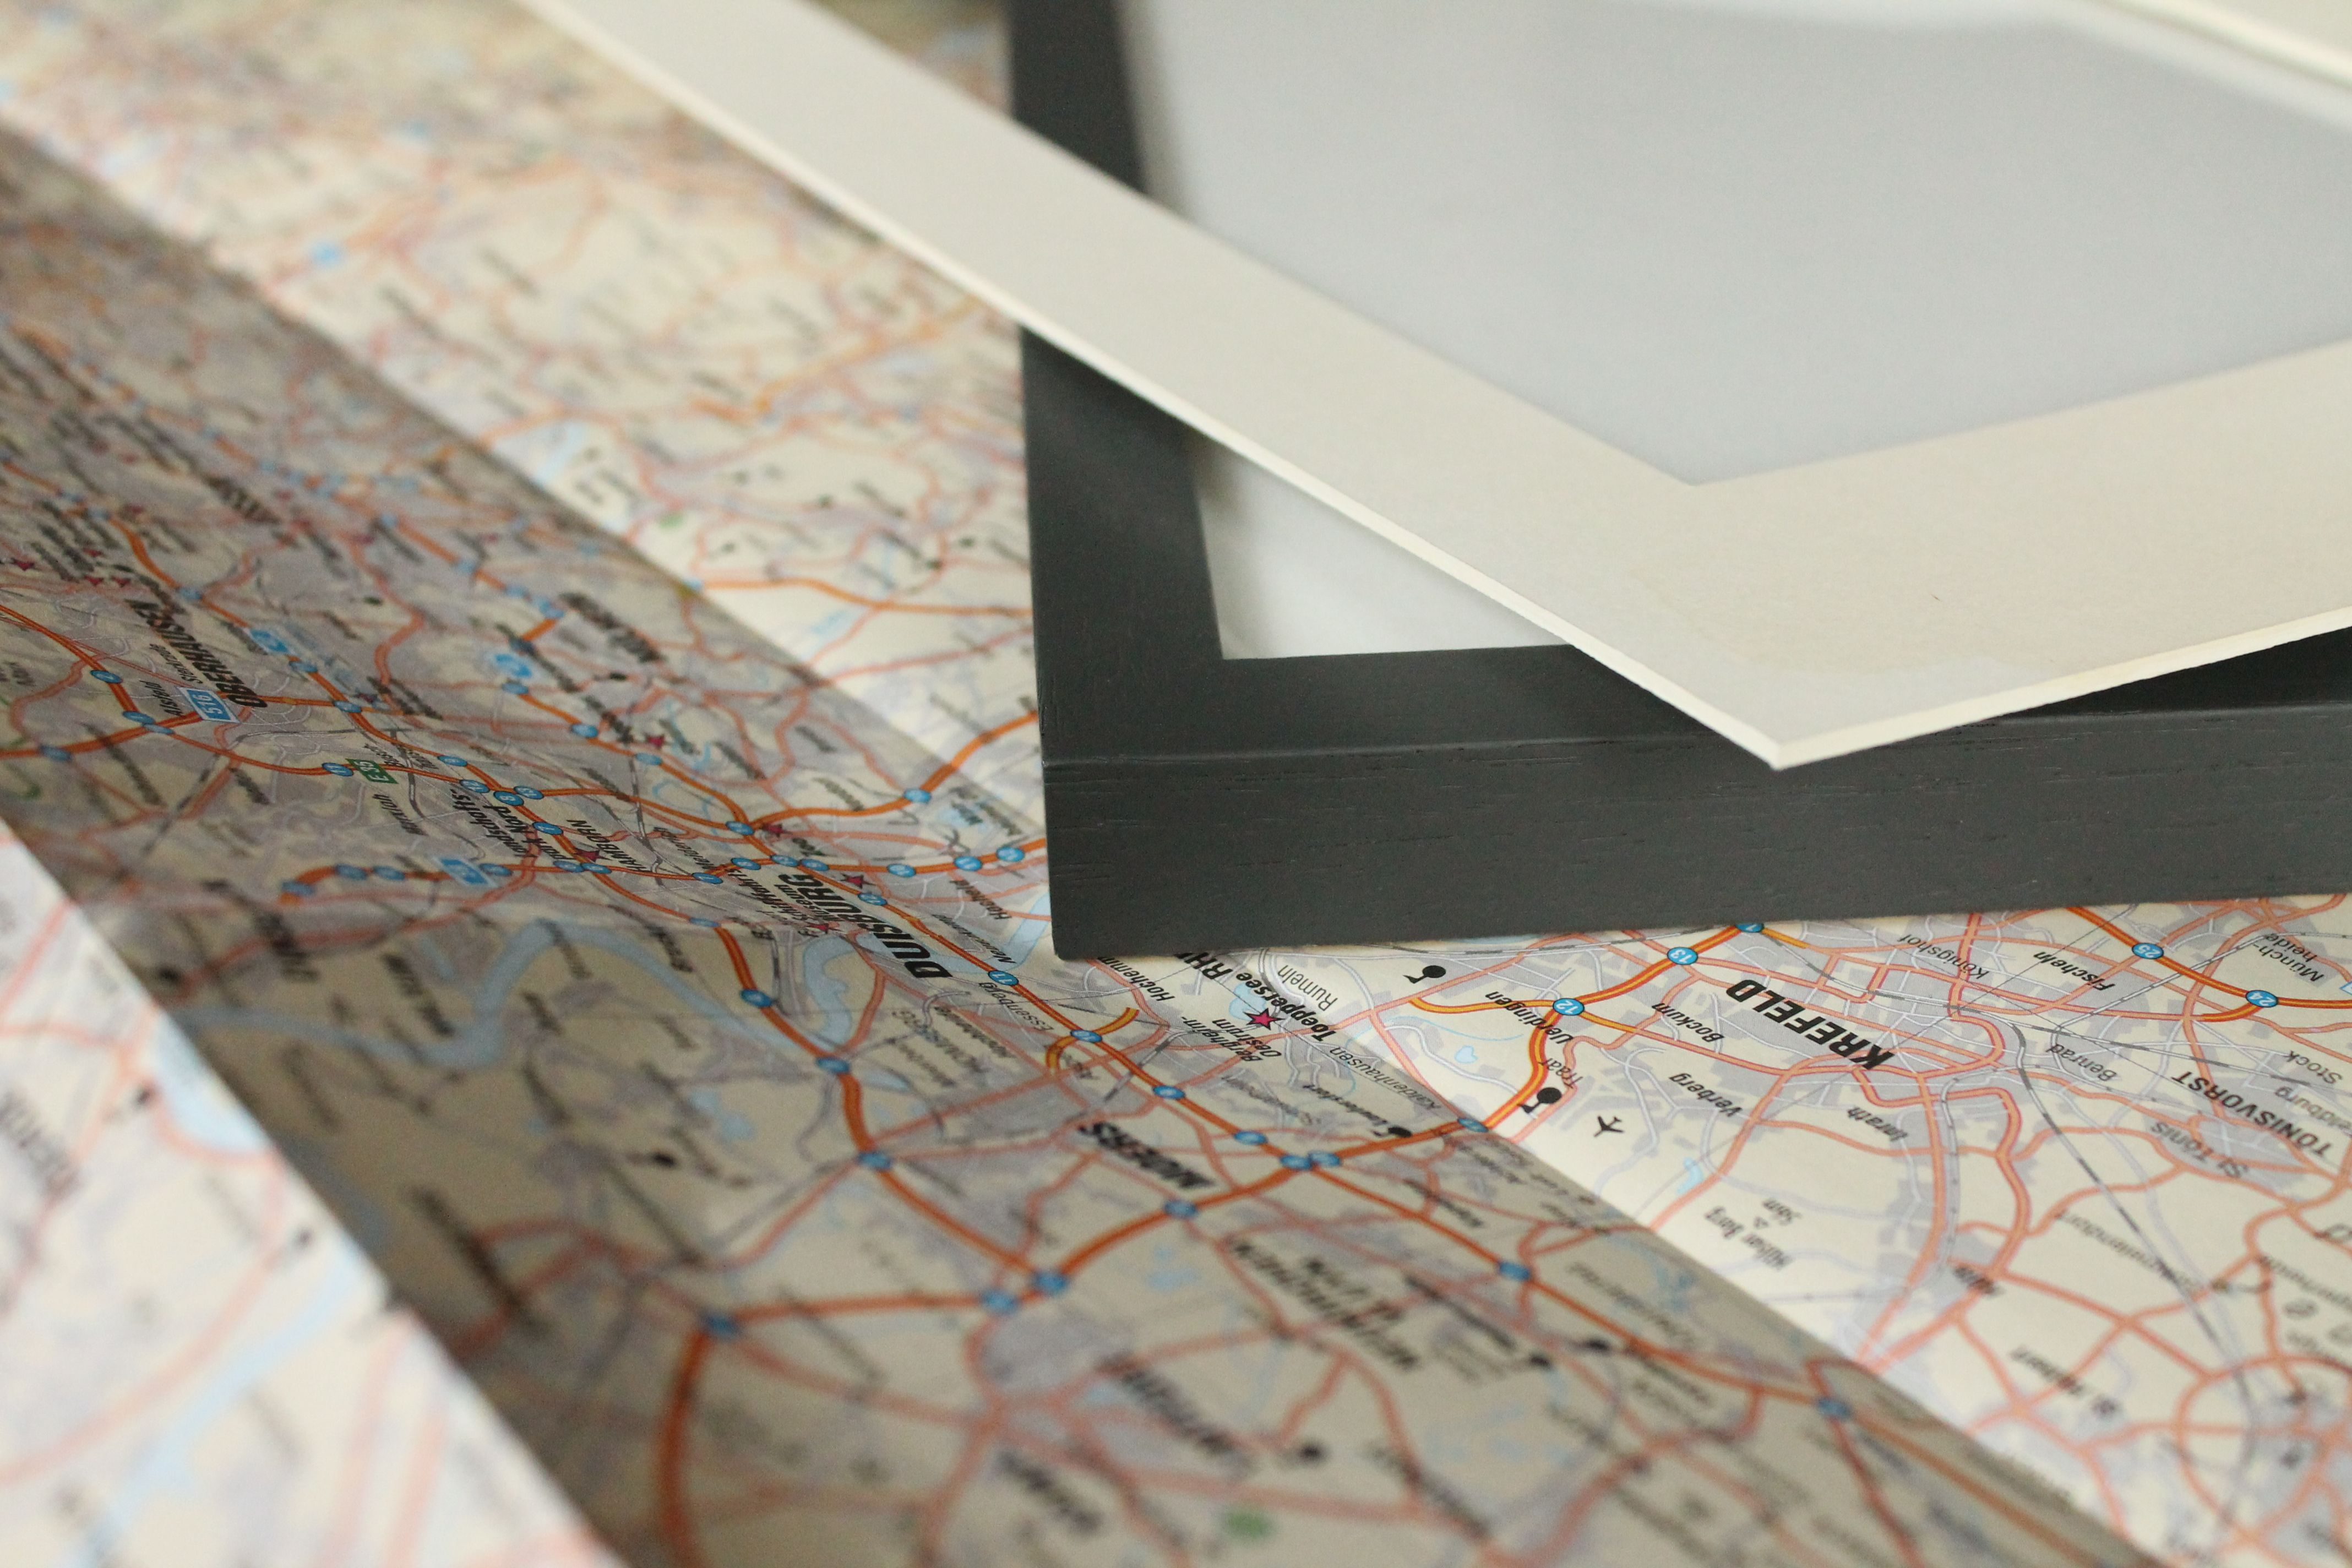 Upcycling: Decorating frame with old map